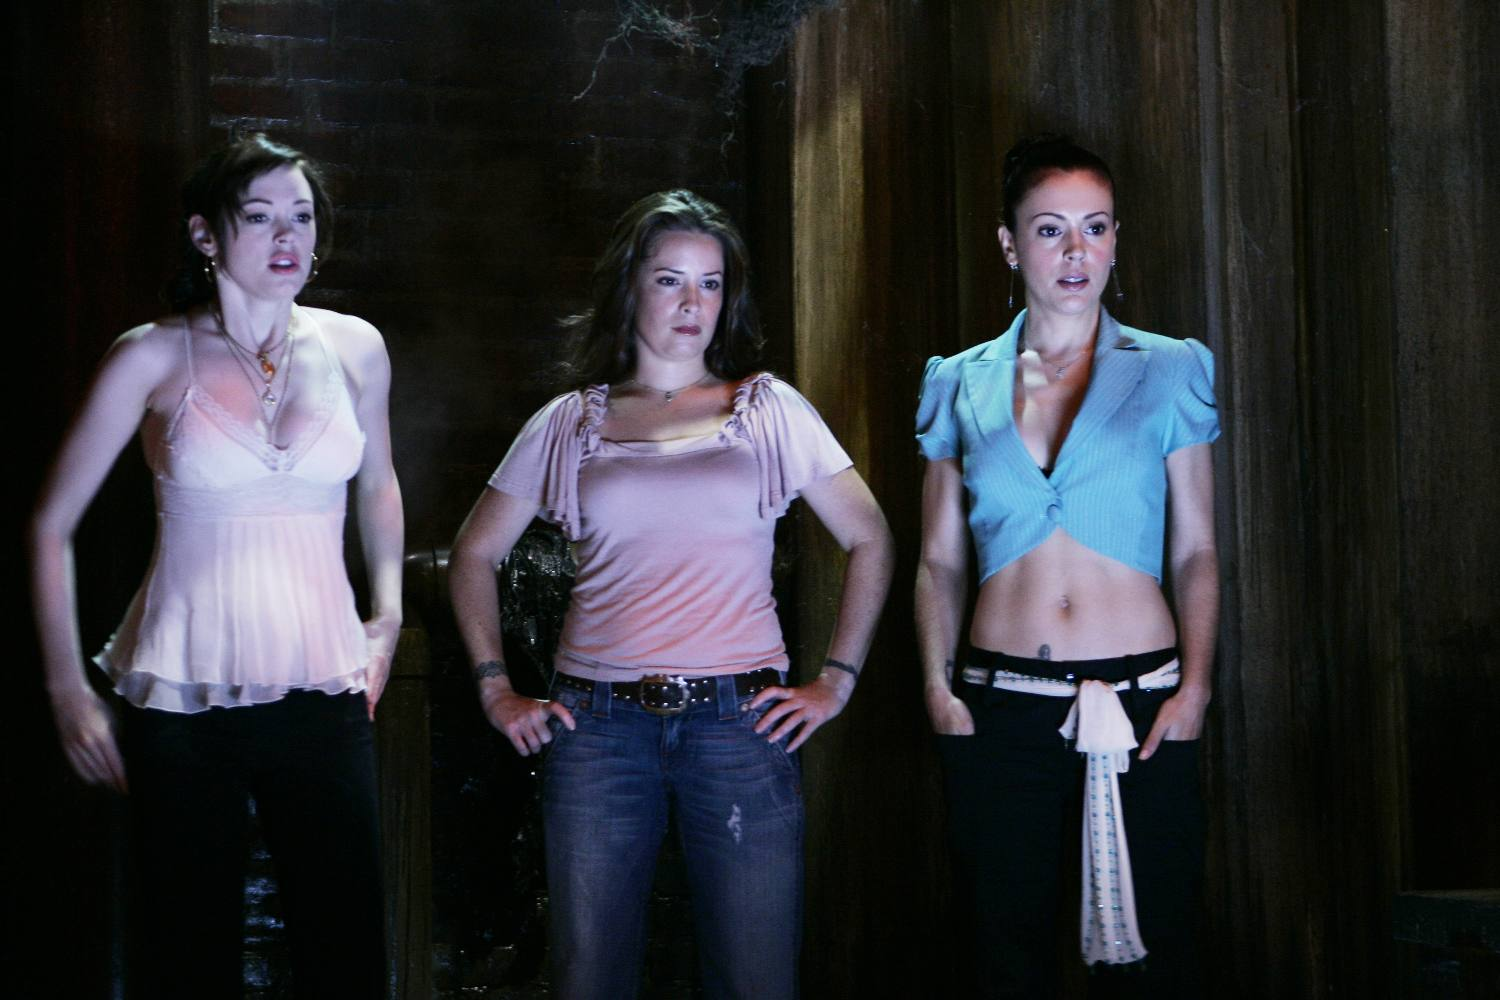 Charmed: Malice in Wonderland